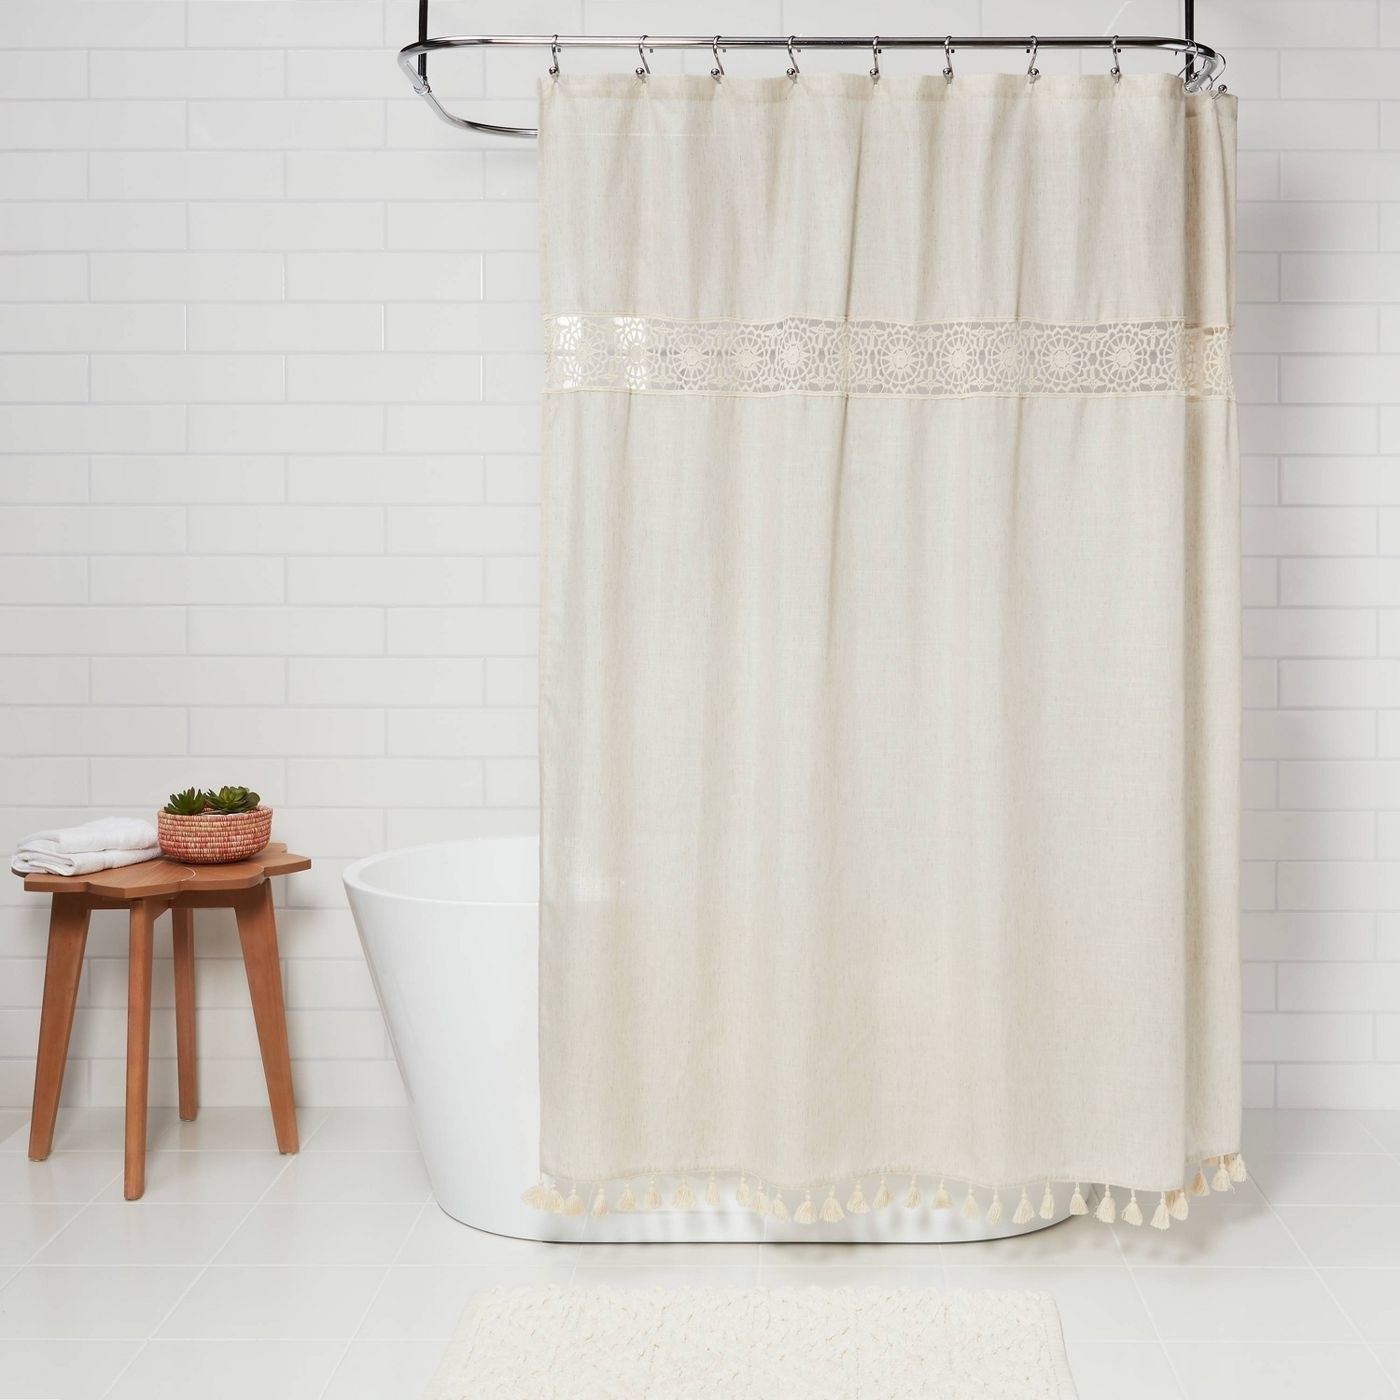 The shower curtain, which is cream-colored and has a linen look, with small fabric tassels on the bottom and crochet details near the top